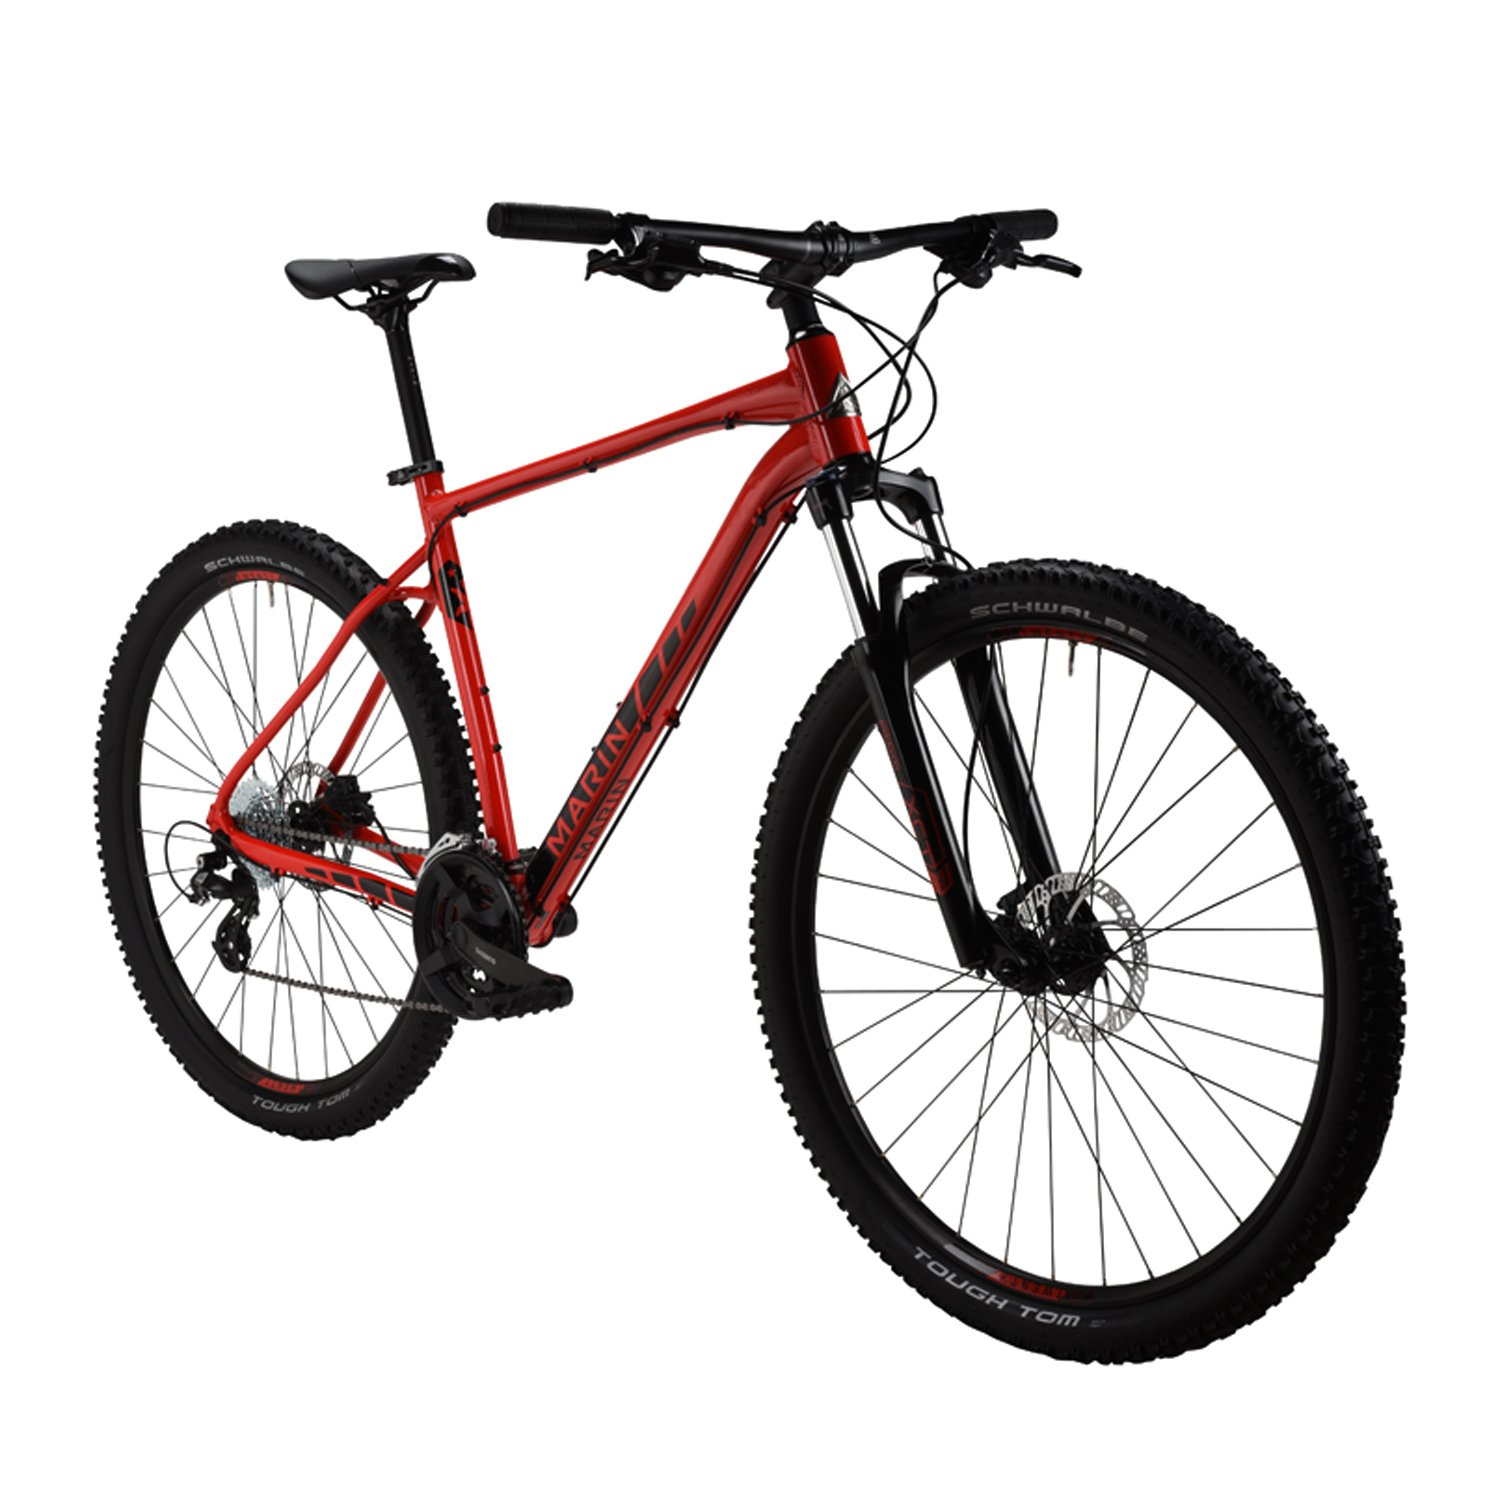 Marin Rock Spring 1 Mountain Bike – 2017パフォーマンスExclusive B06Y5MY1GD XLarge|レッド レッド XLarge